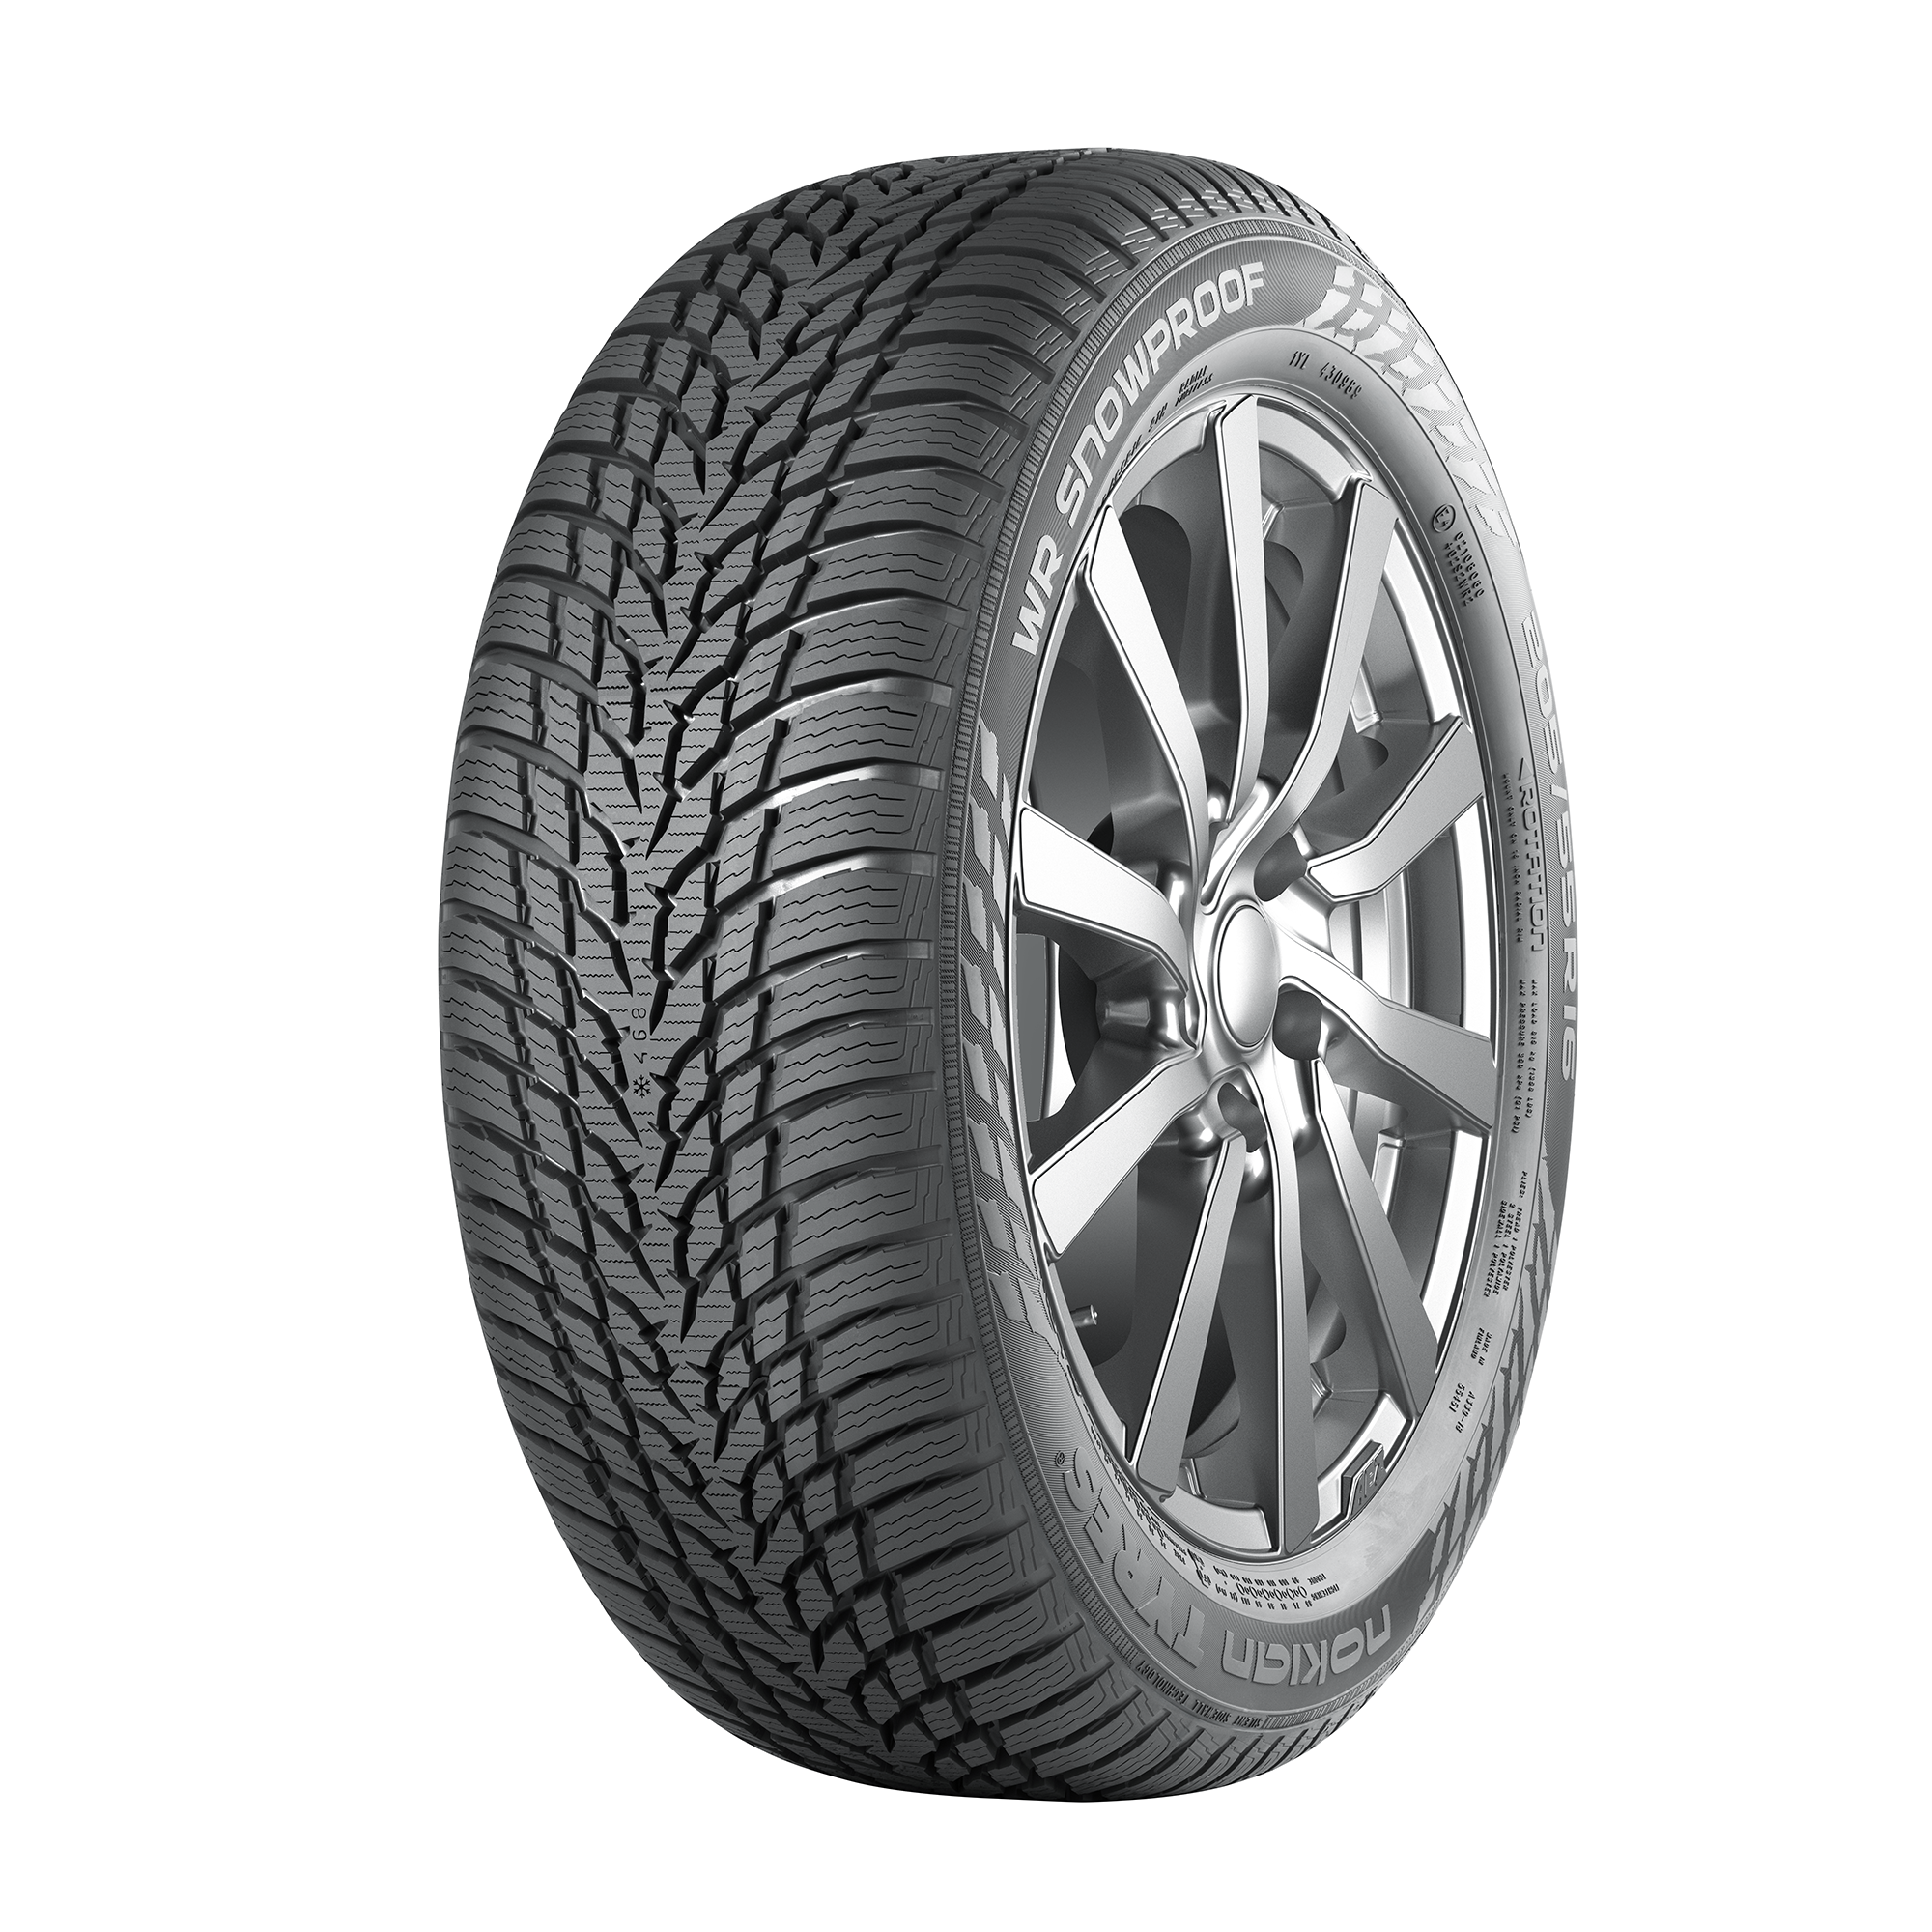 Anvelope Nokian Wr Snowproof 215/60R17 96H Iarna